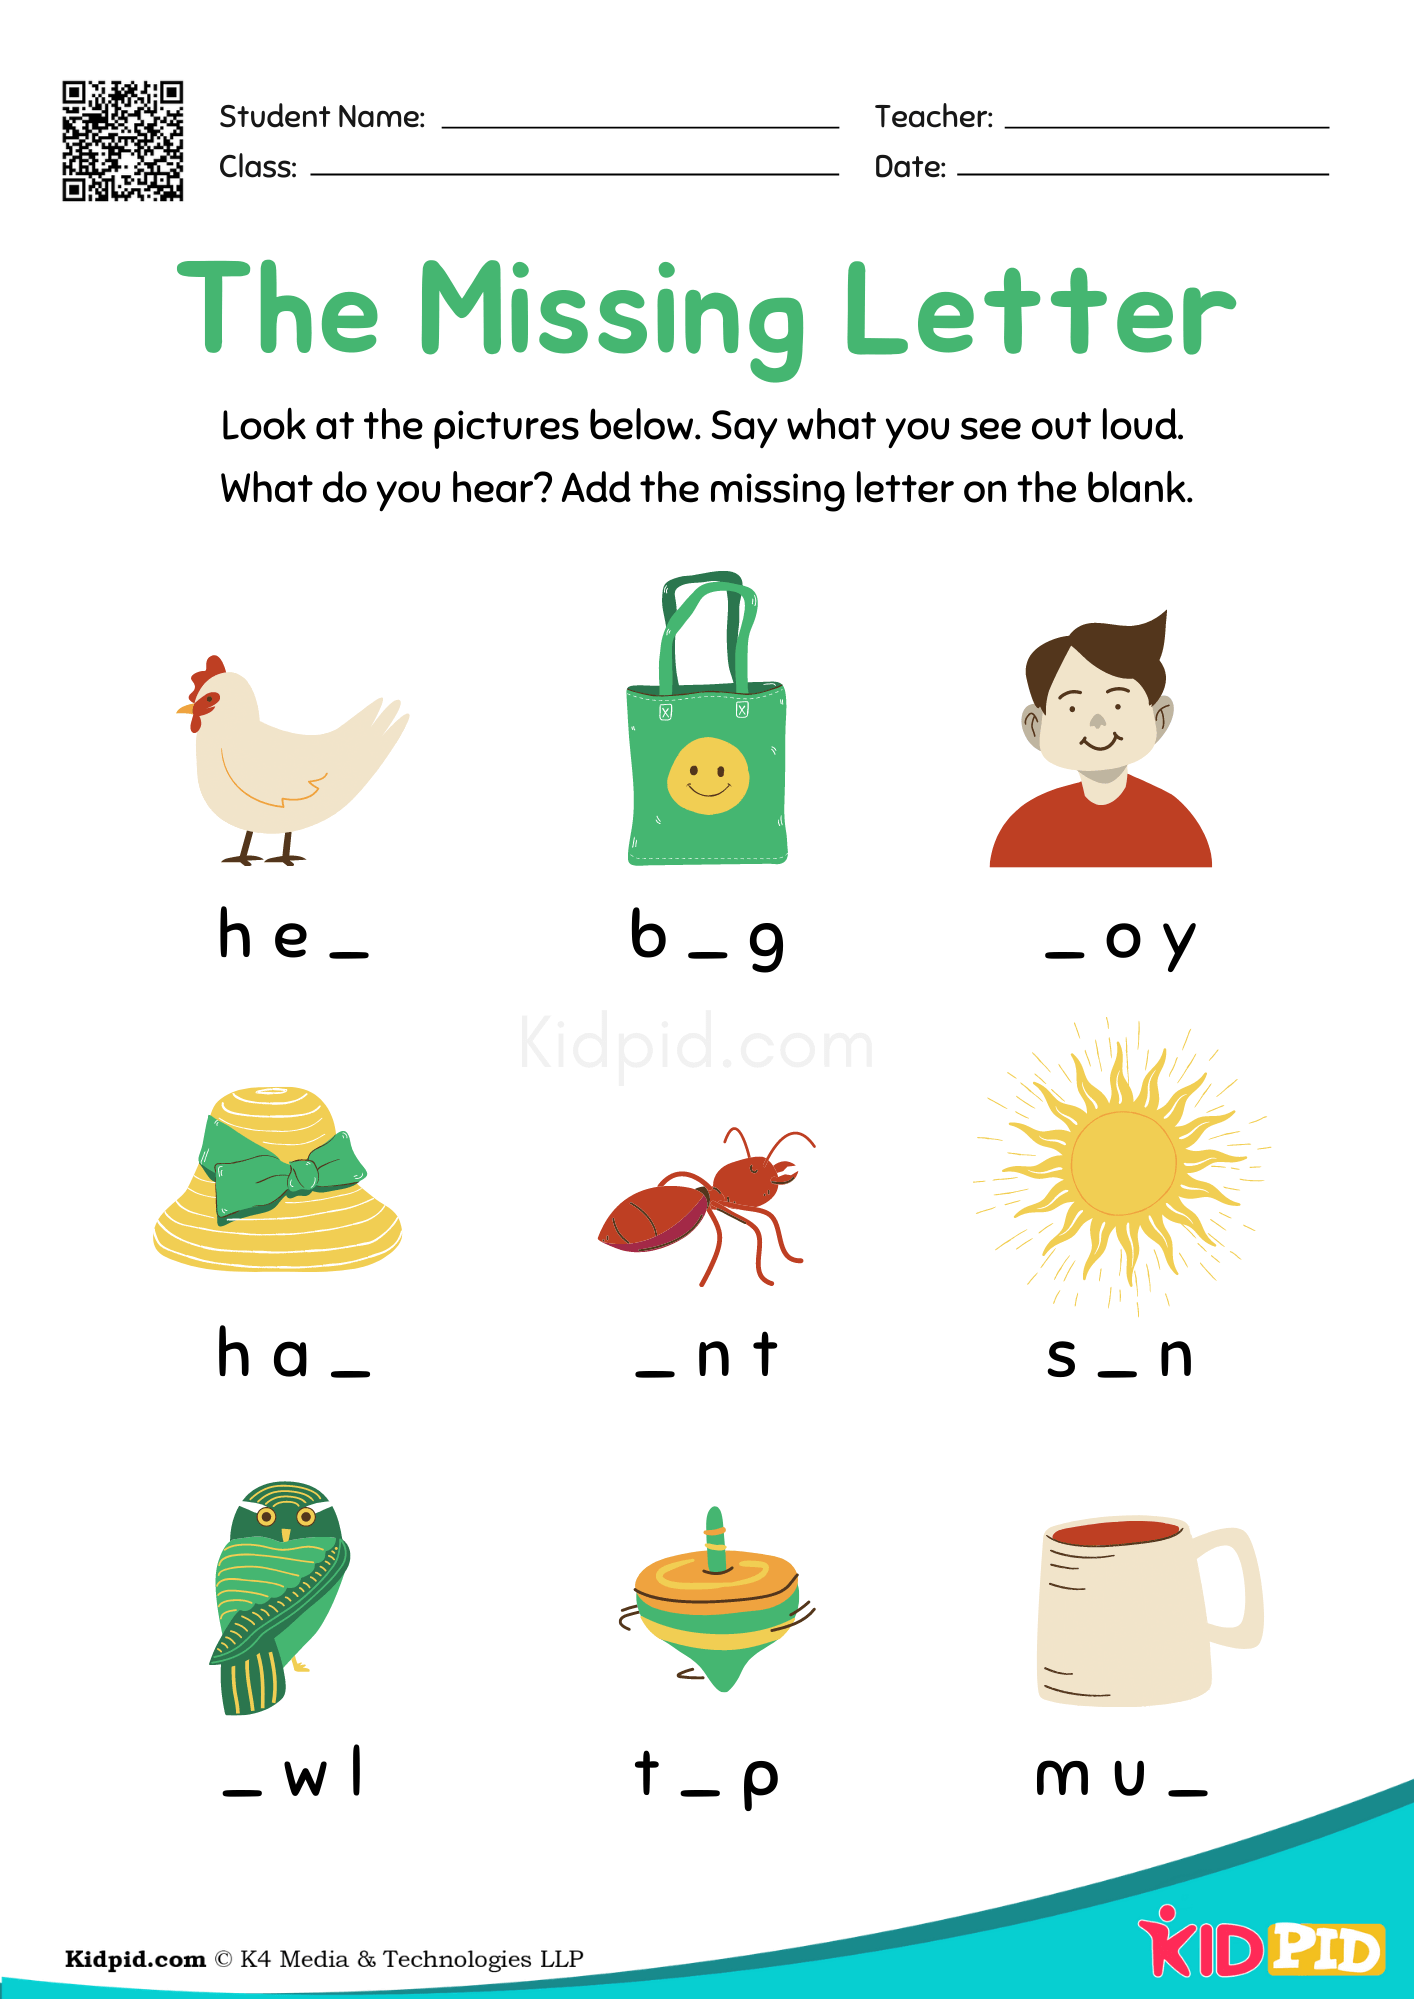 Colorful English Spelling Missing Letter Activity